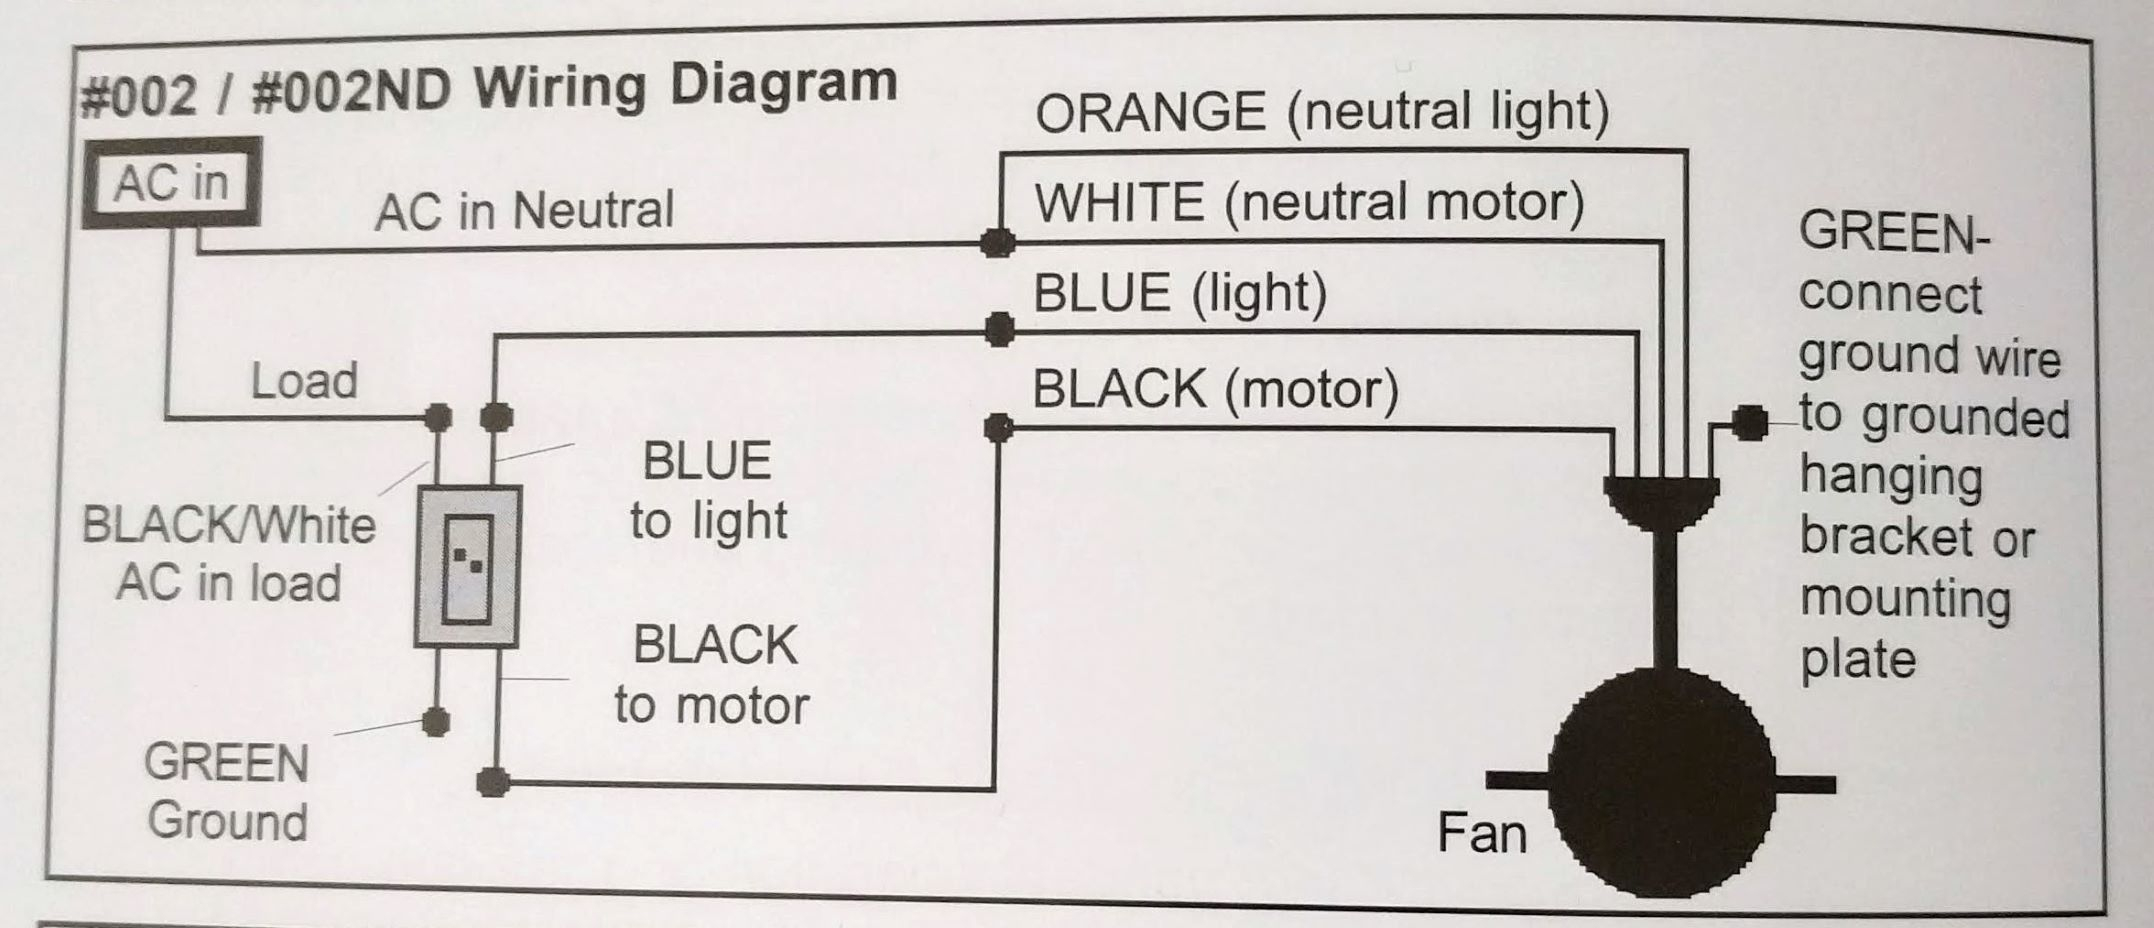 Wiring A Ceiling Fan With Black, White, Red, Green In Ceiling Box - Ceiling Fan Wall Switch Wiring Diagram